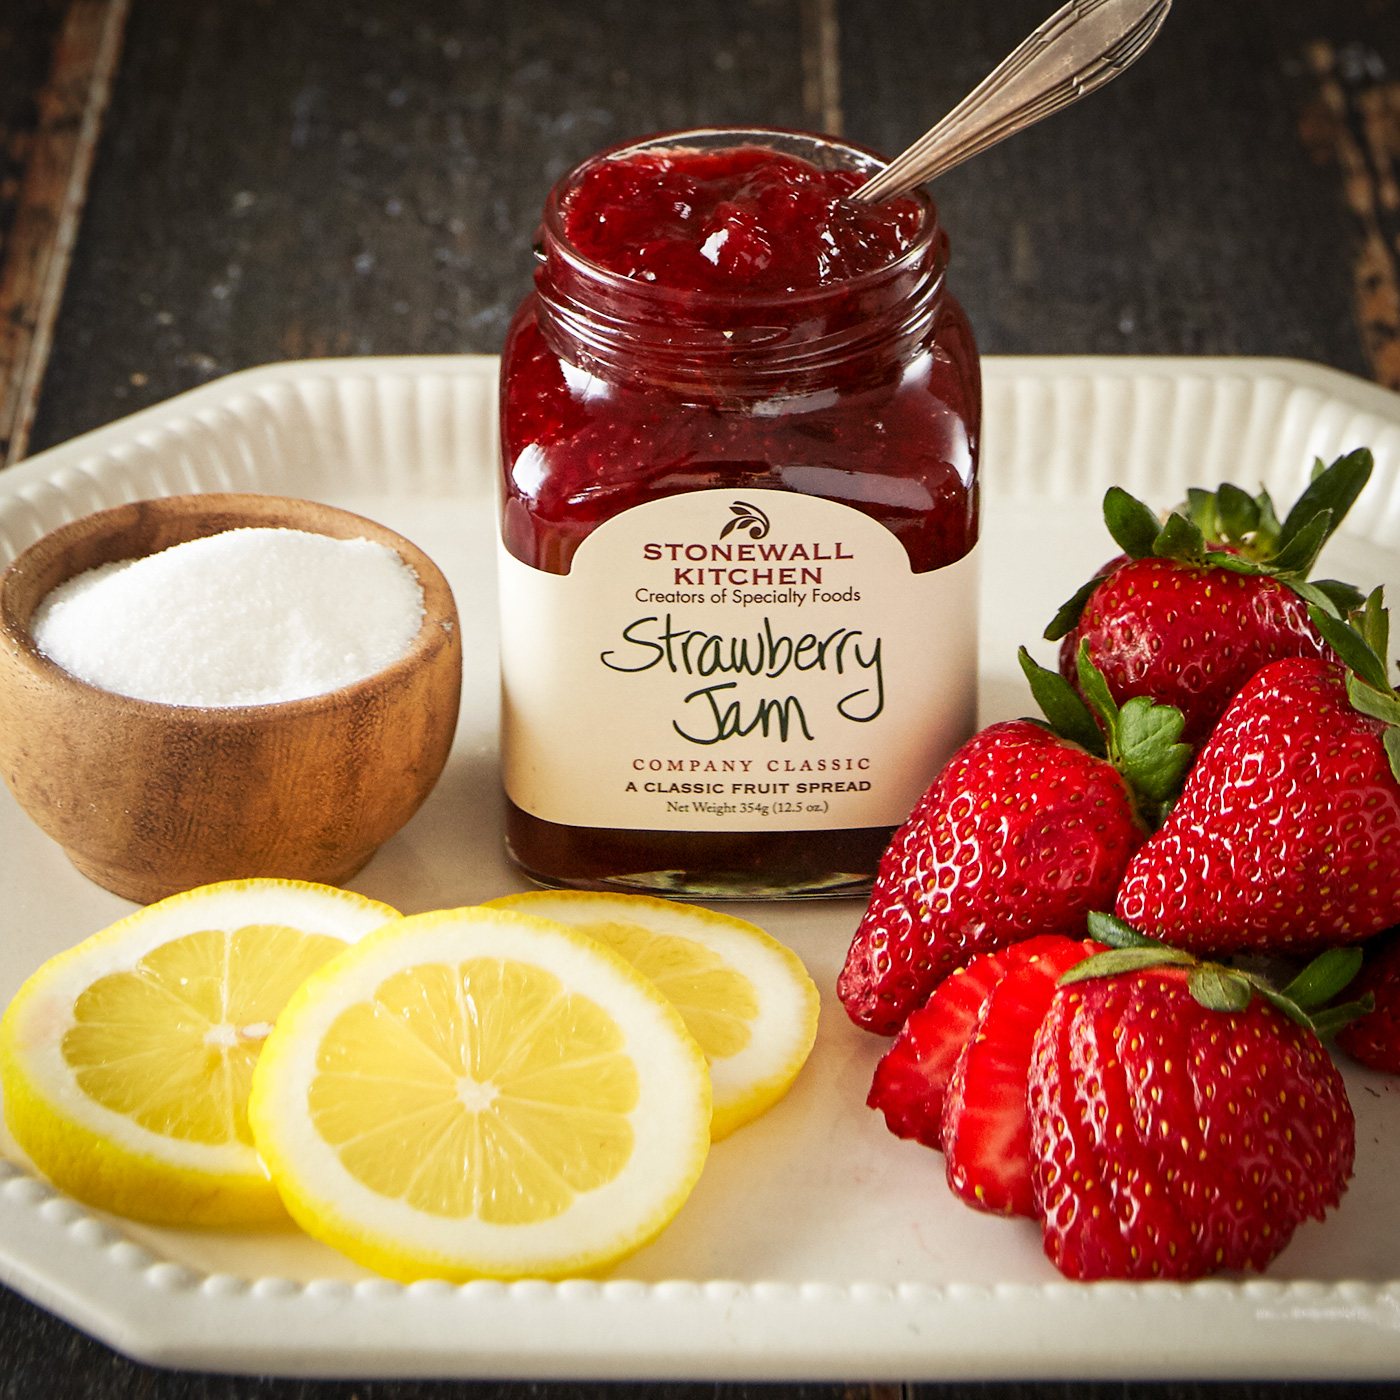 stonewall kitchen com kidkraft toy strawberry jam jams preserves and spreads